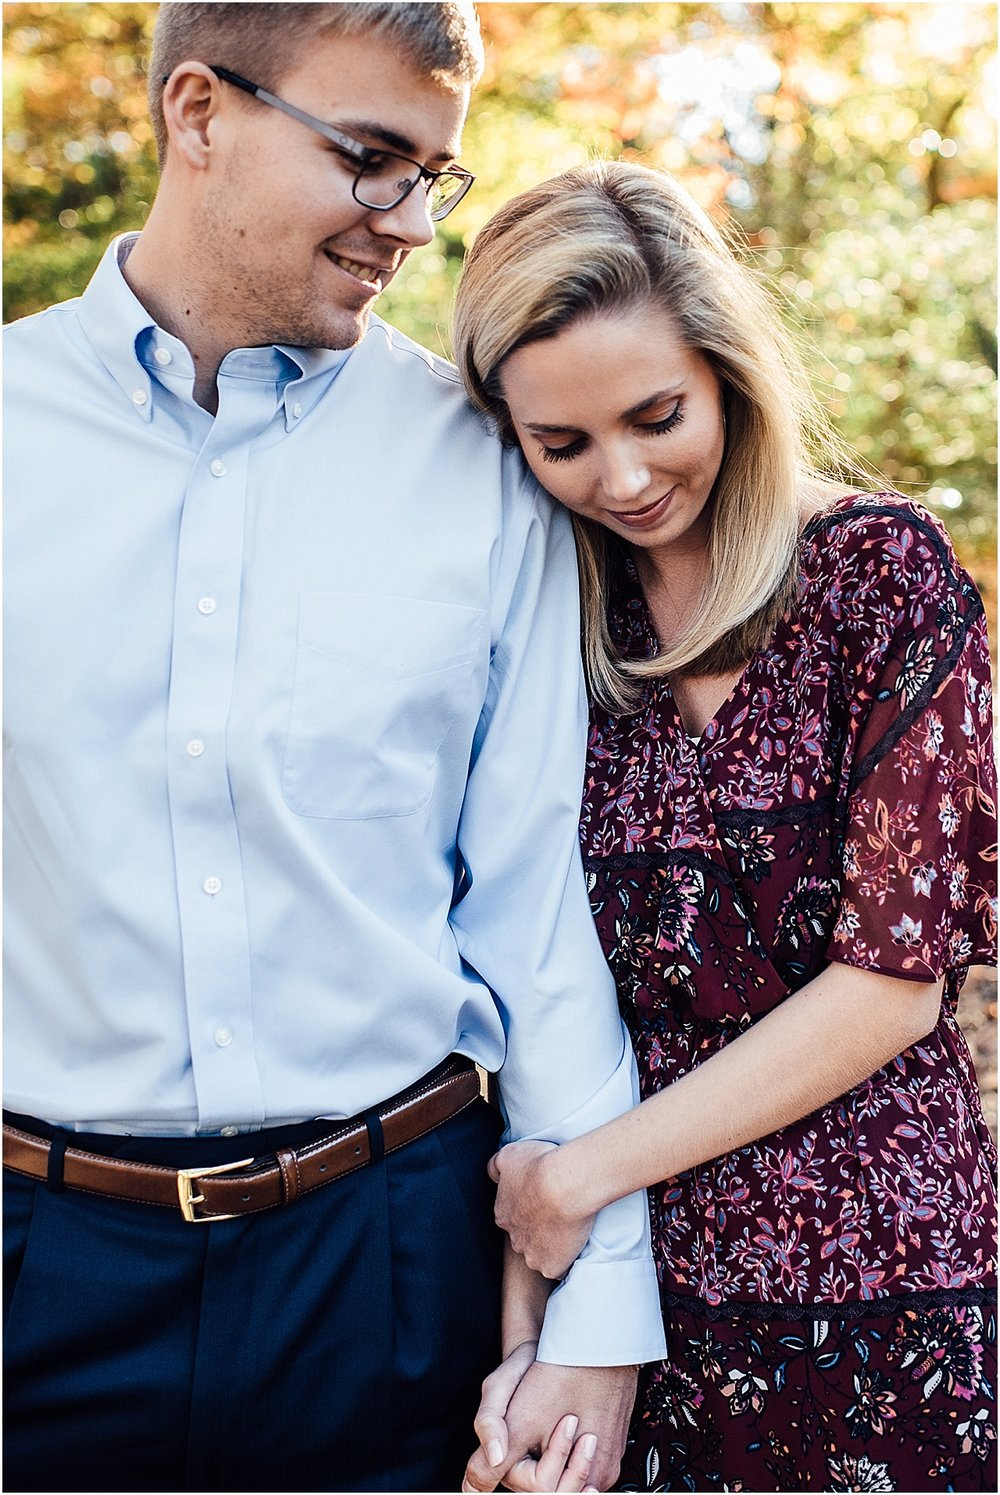 Lindsey Ann Photography - Engagement session at the Botanical Gardens in Downtown Birmingahm